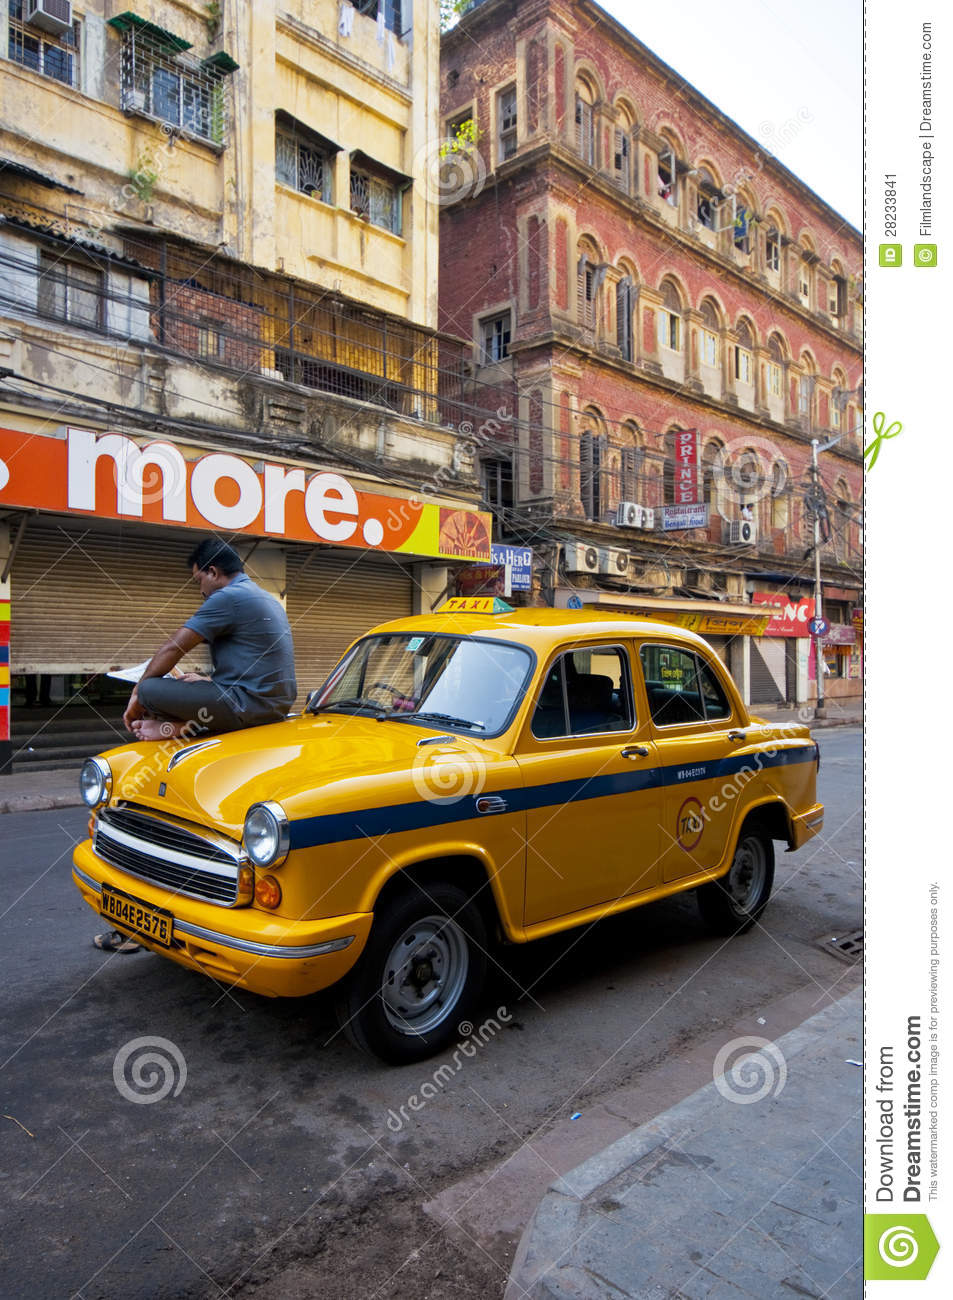 Uber, Ola Cabs have a booming business in Kolkata